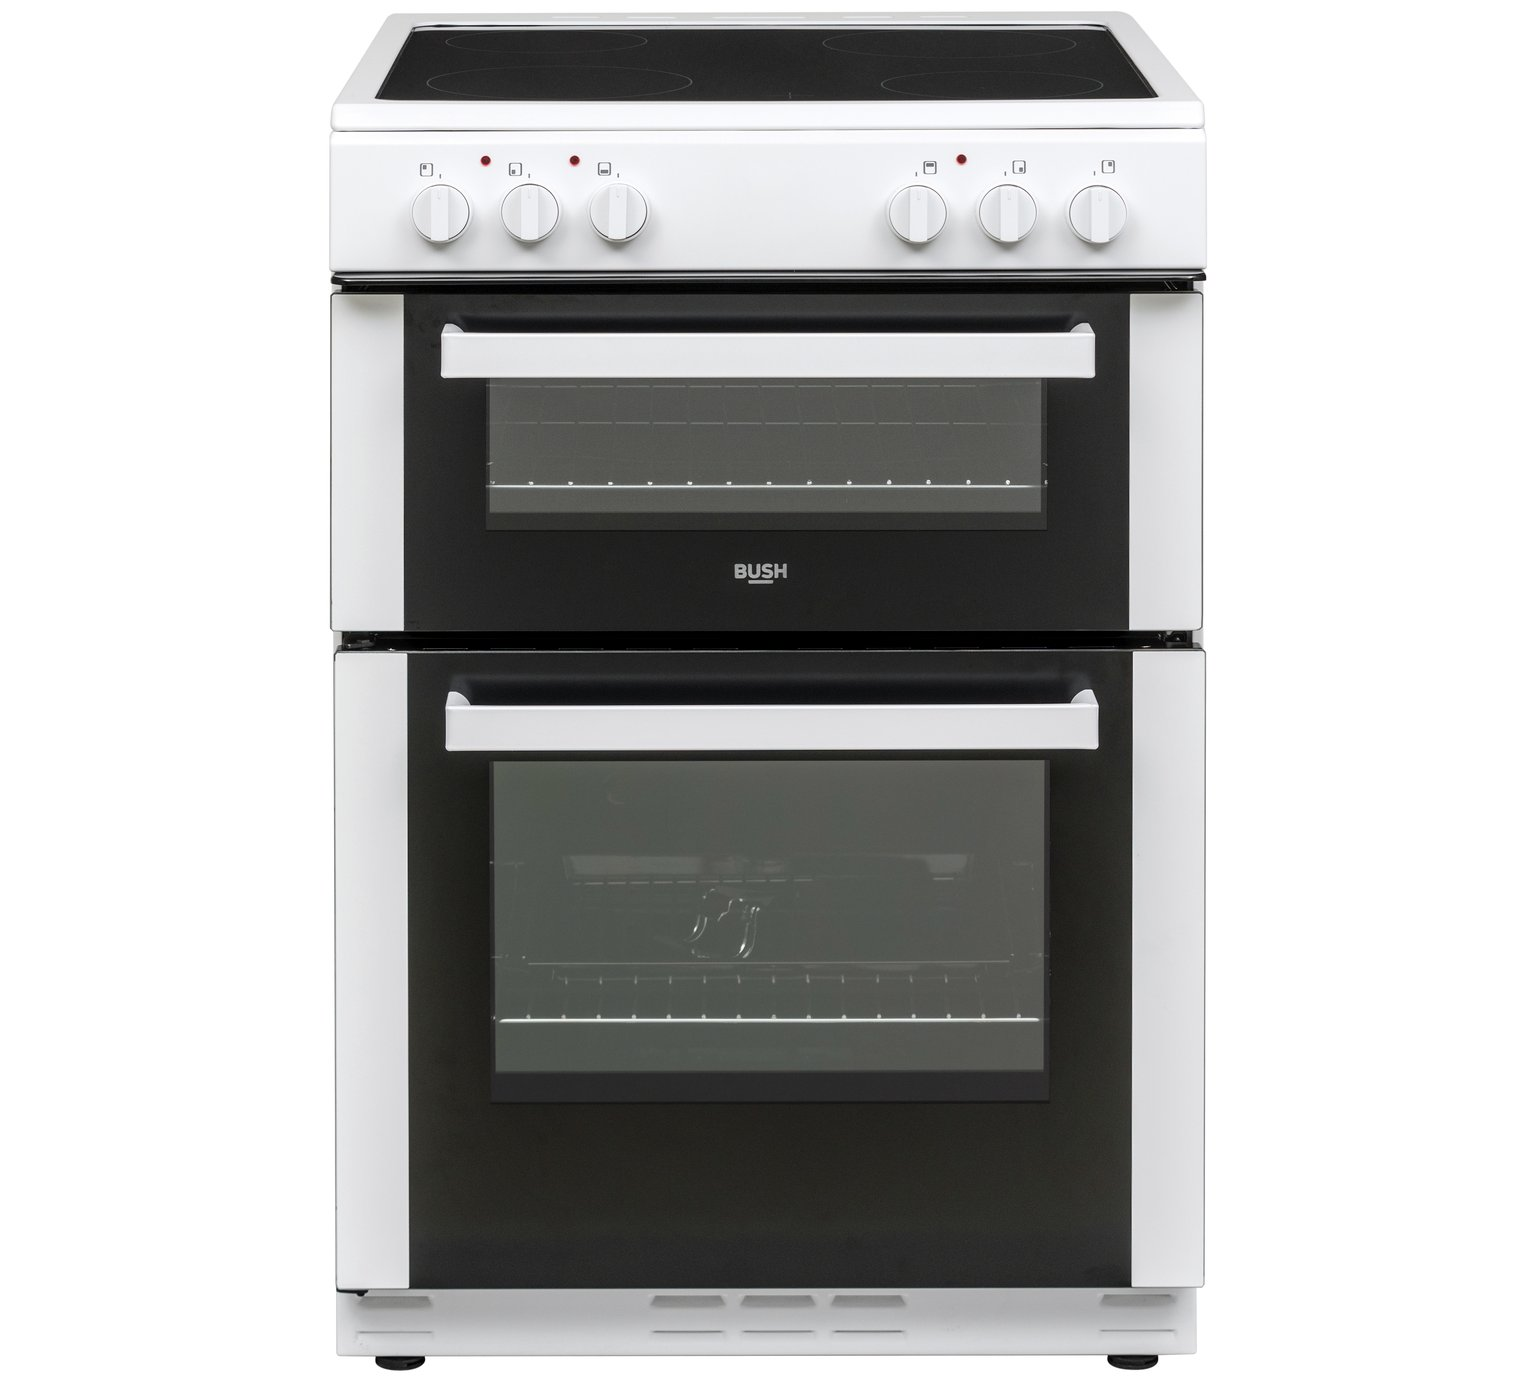 Bush Bt60elw Electric Cooker Appliance Spotter